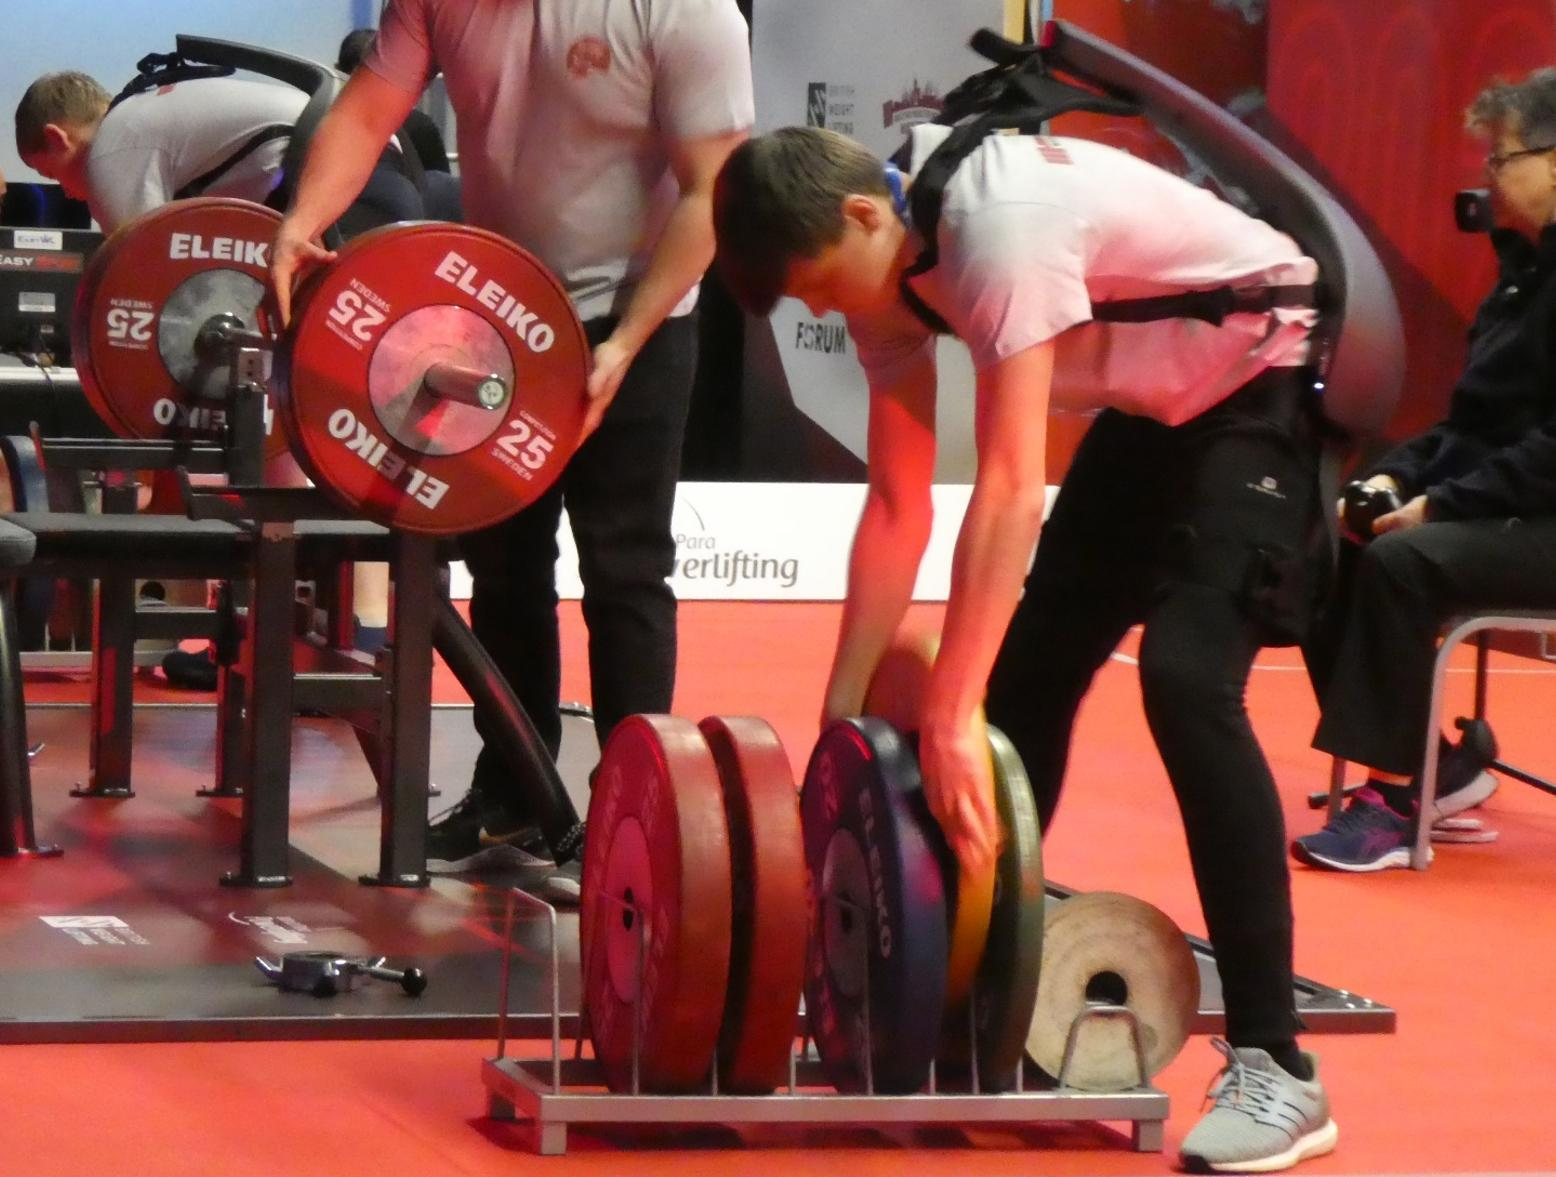 Photo: The spotter/loader personnel using Panasonic's Power Assist Suit at the Manchester 2020 Para Powerlifting World Cup